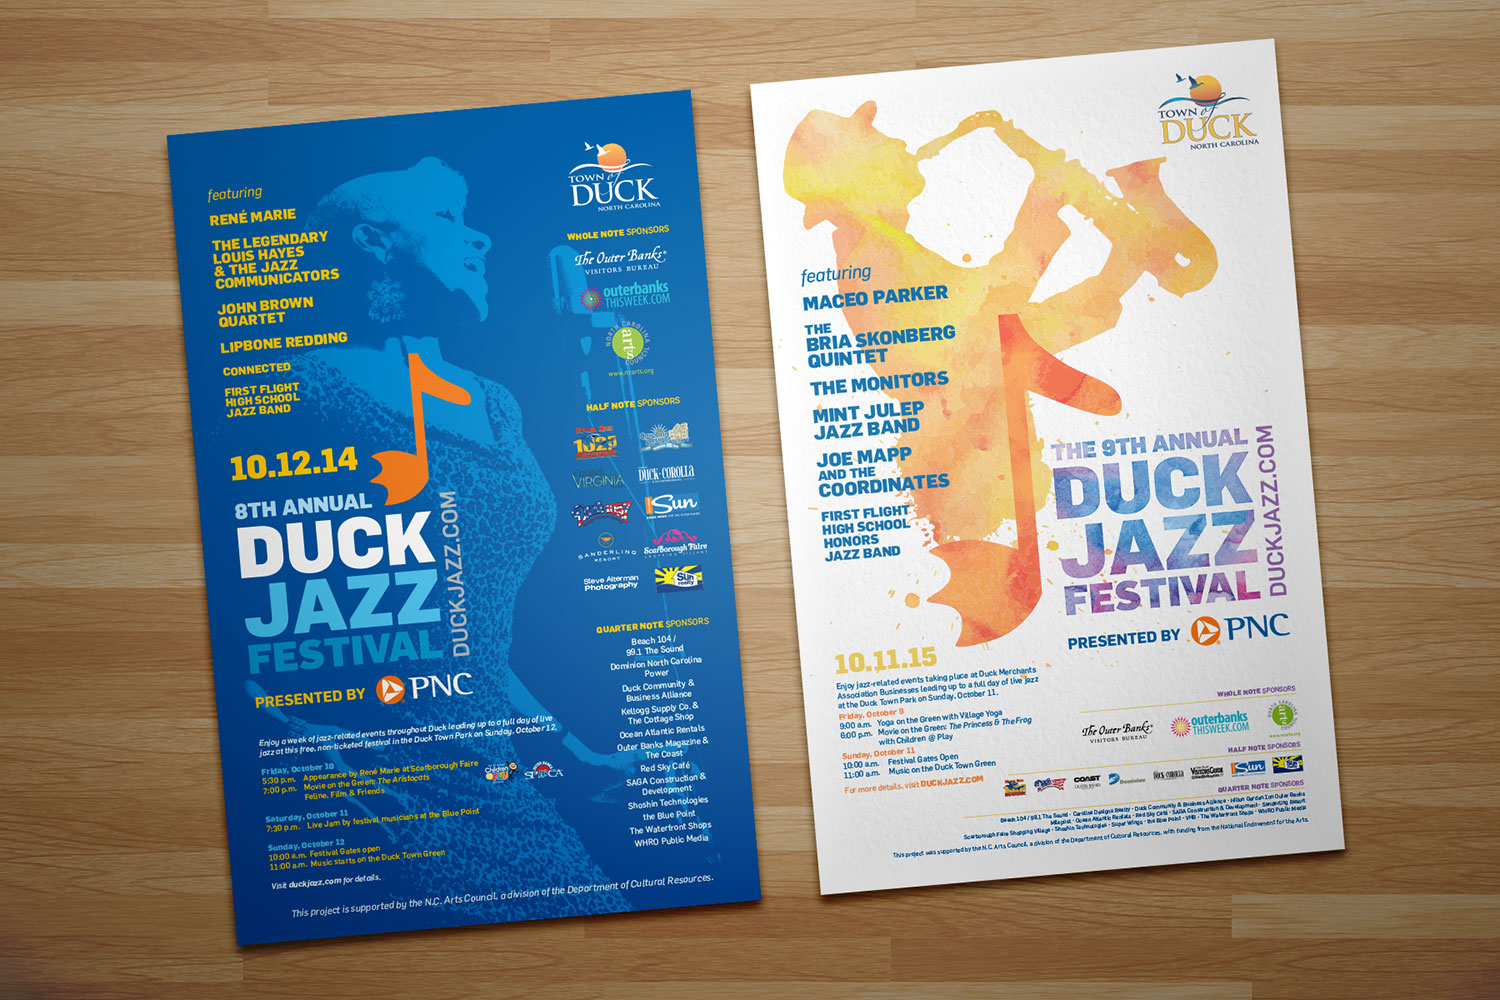 Duck Jazz Festival marketing